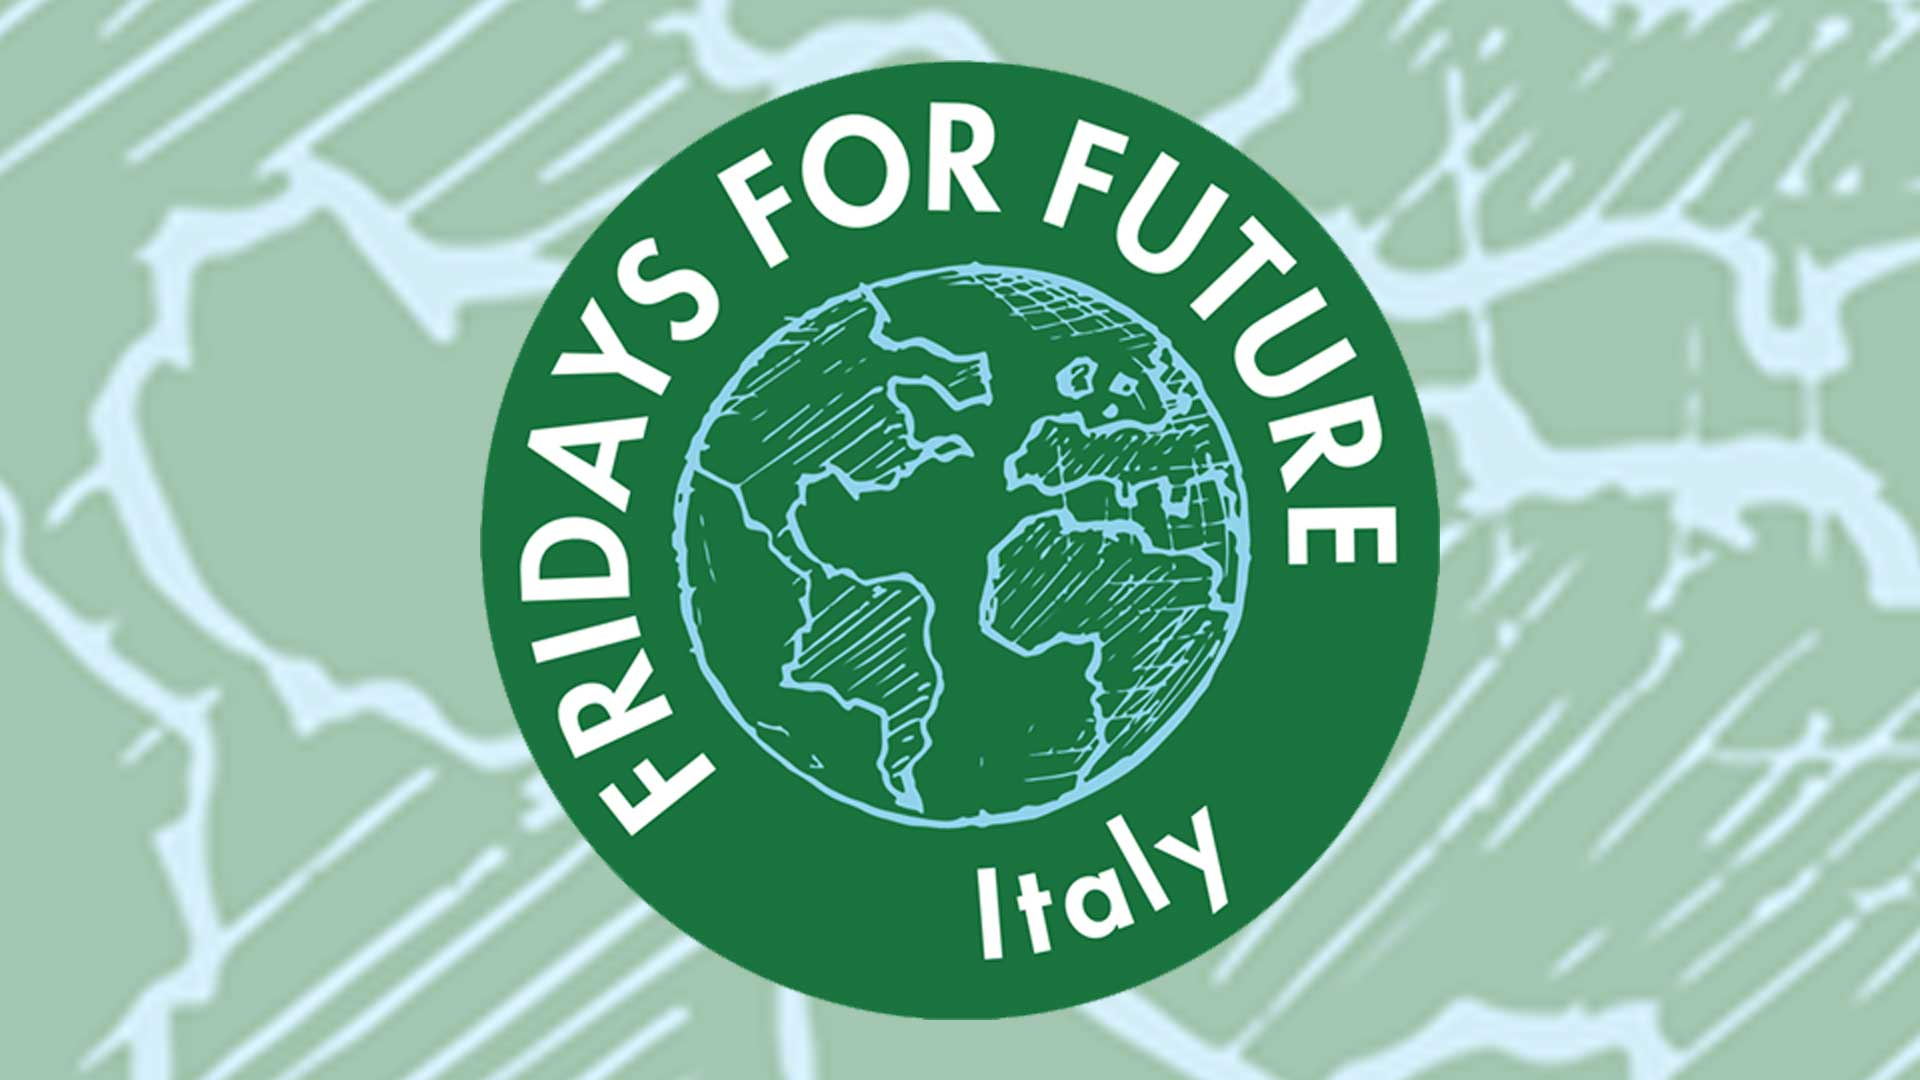 Friday for future - logo